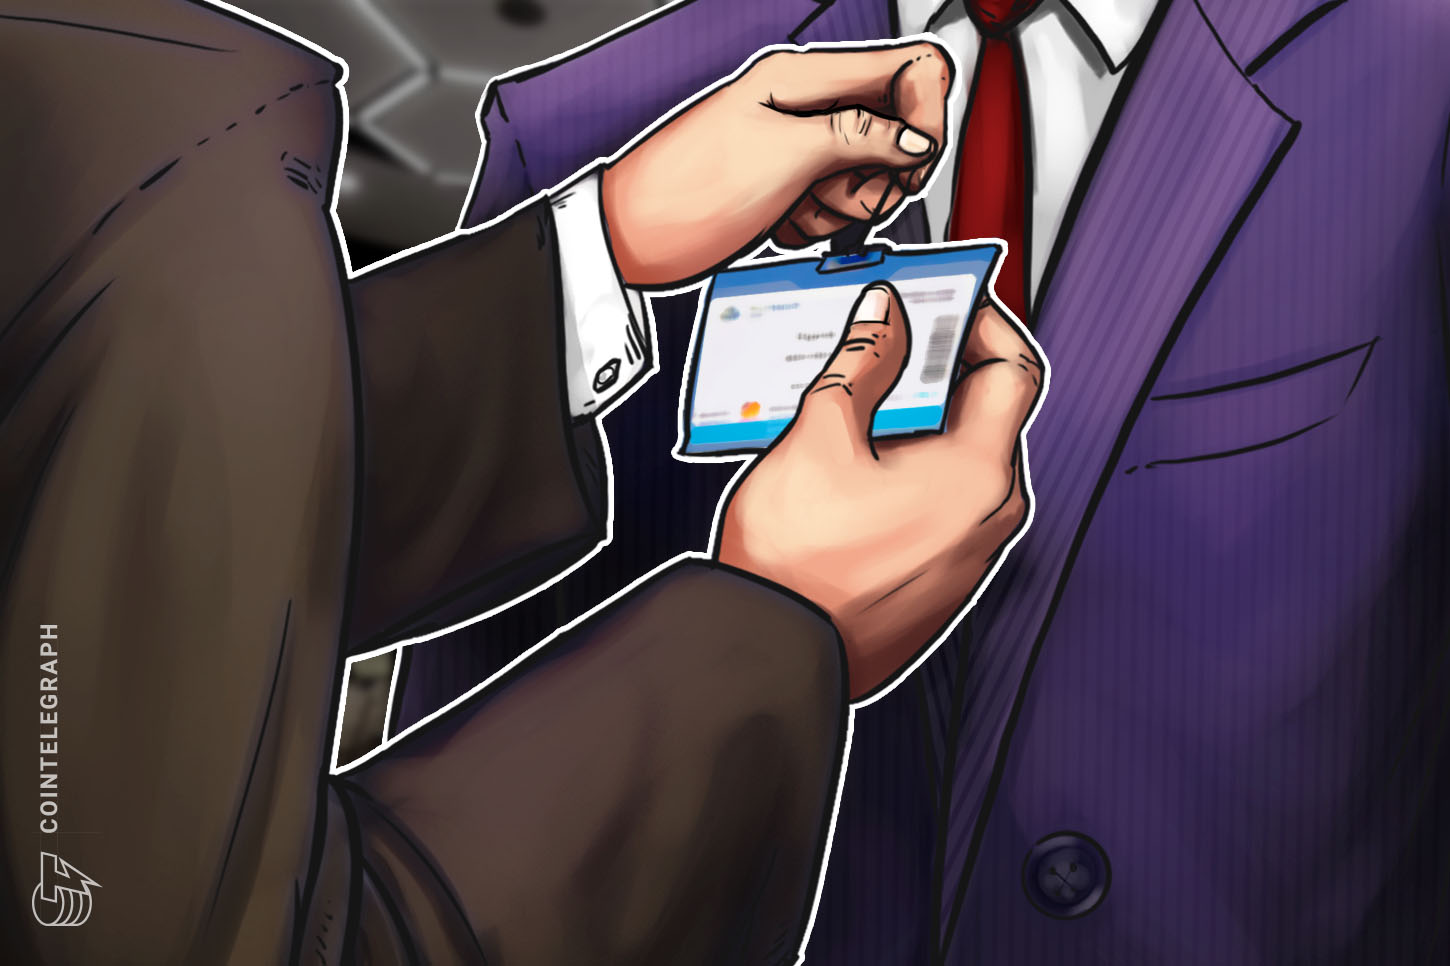 Former US Treasury official joins Binance to lead AML efforts